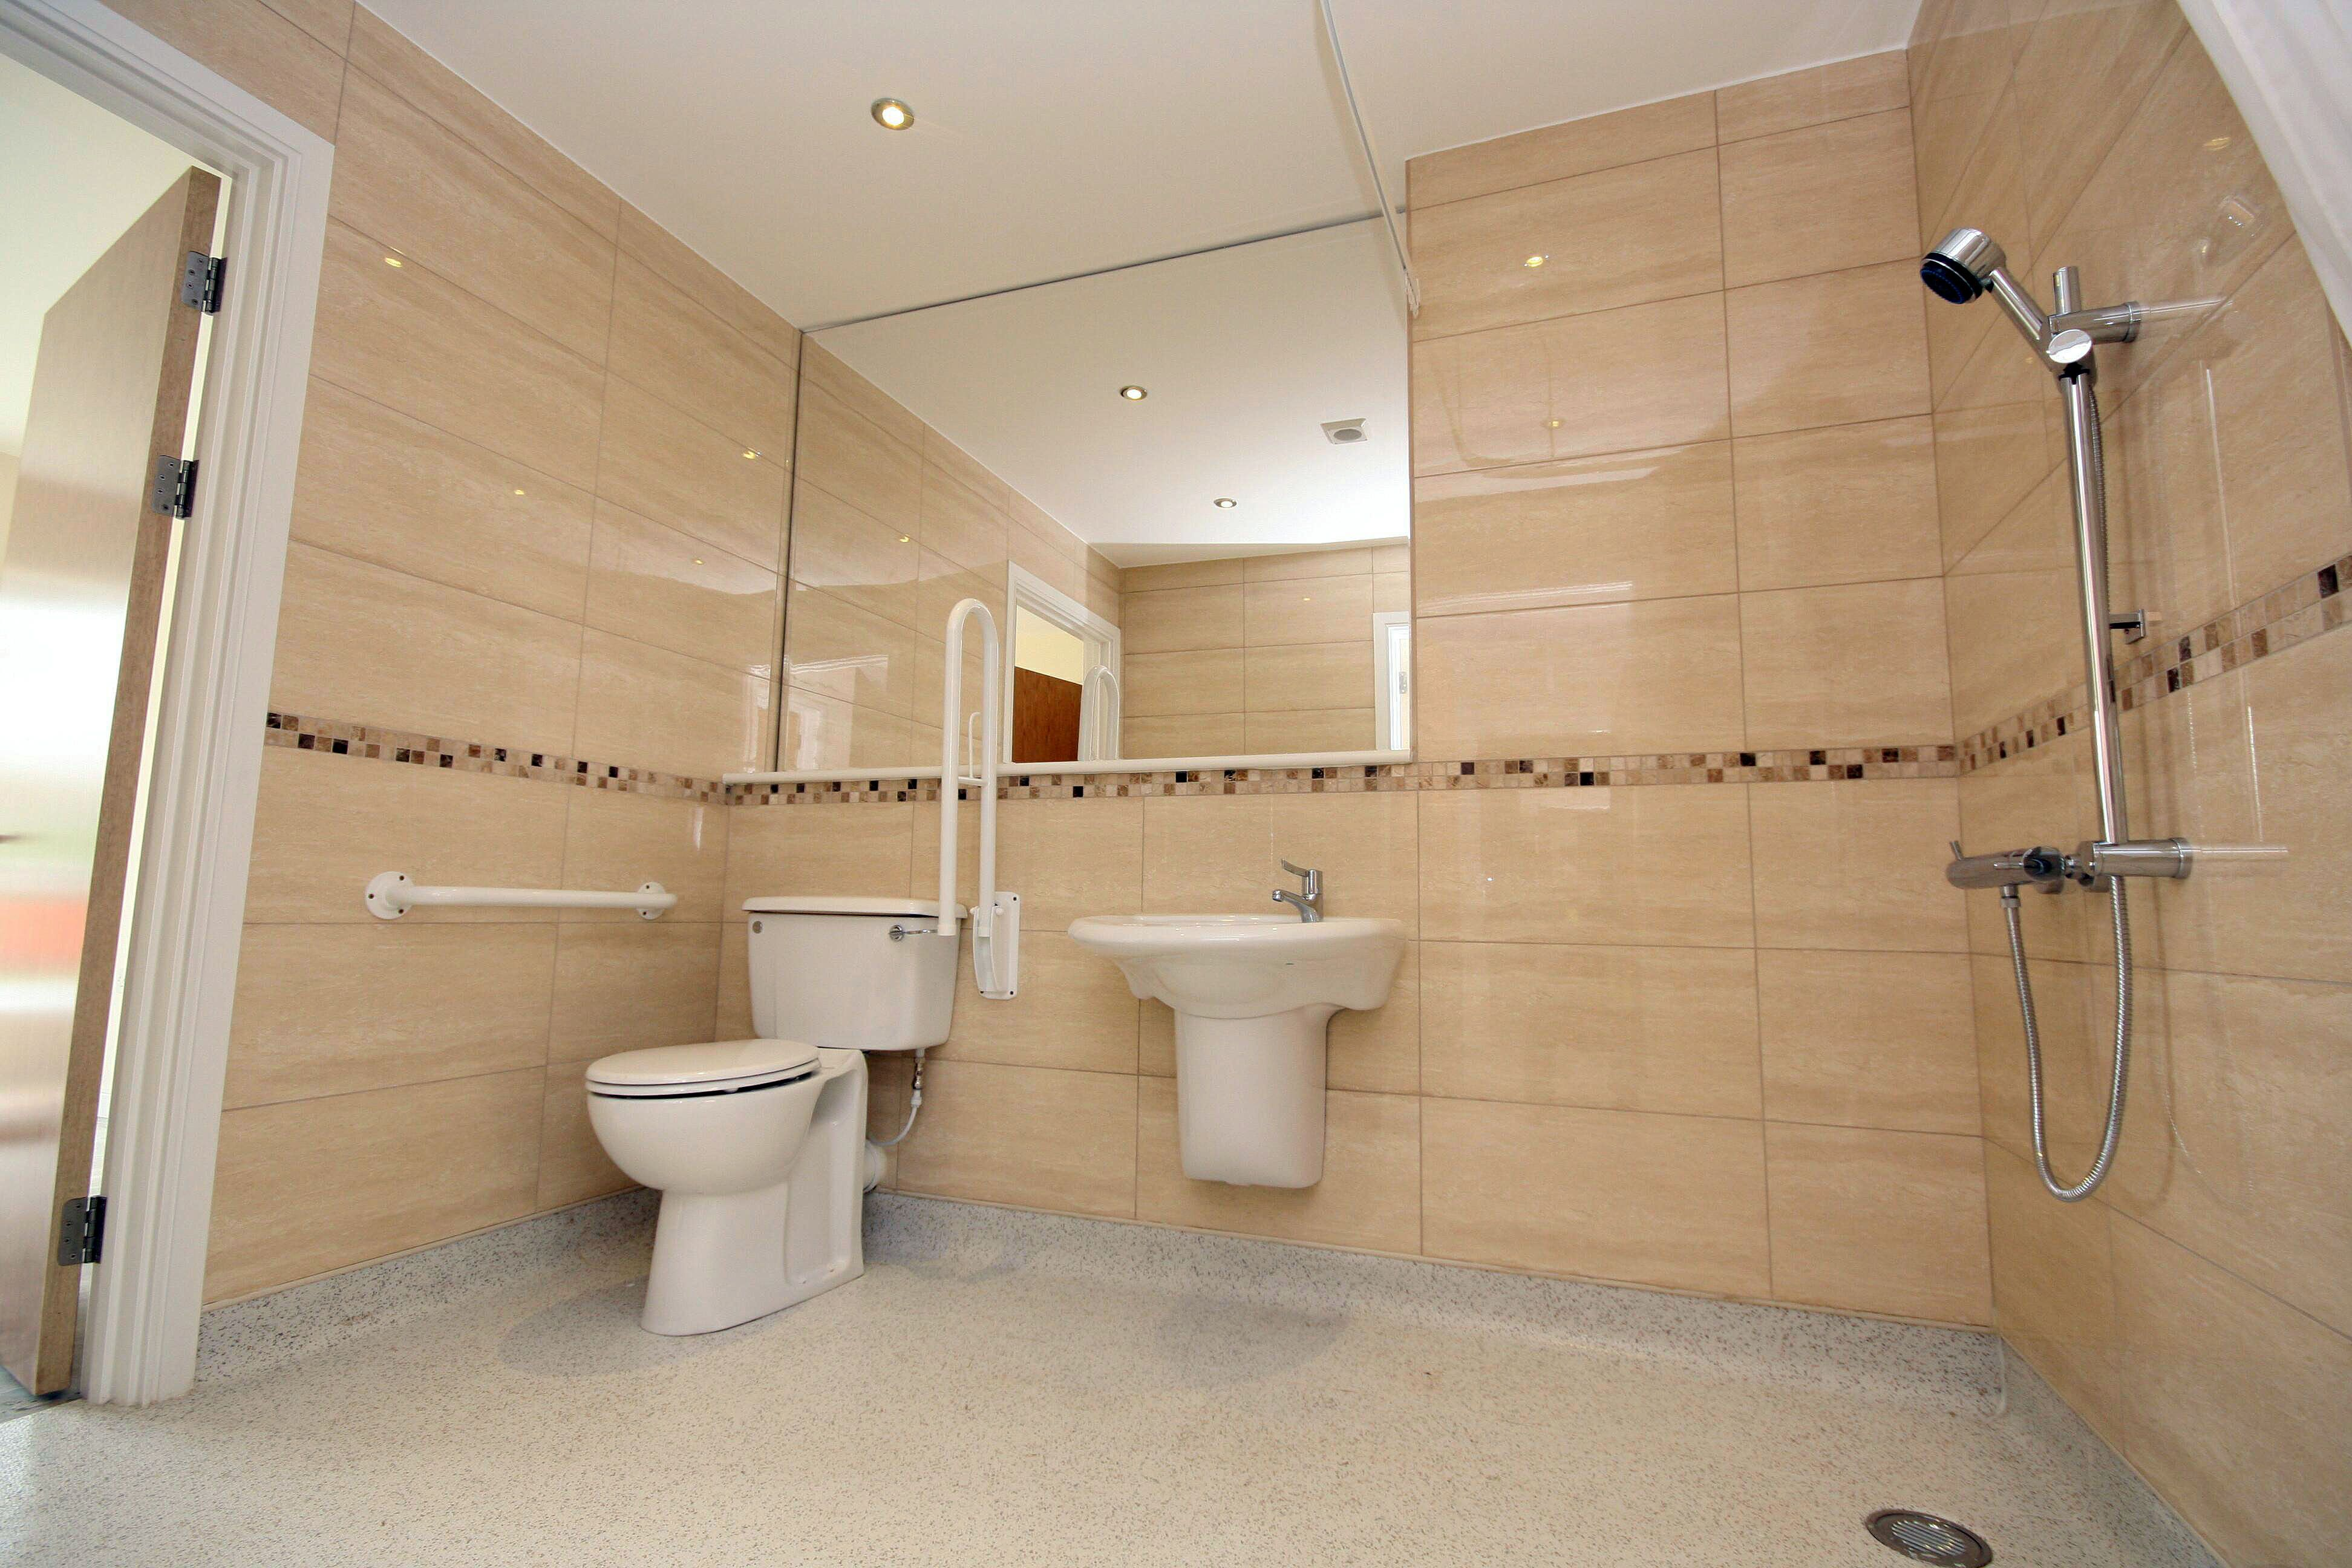 Wet Room For A Young Disabled Boy Allowing Room And